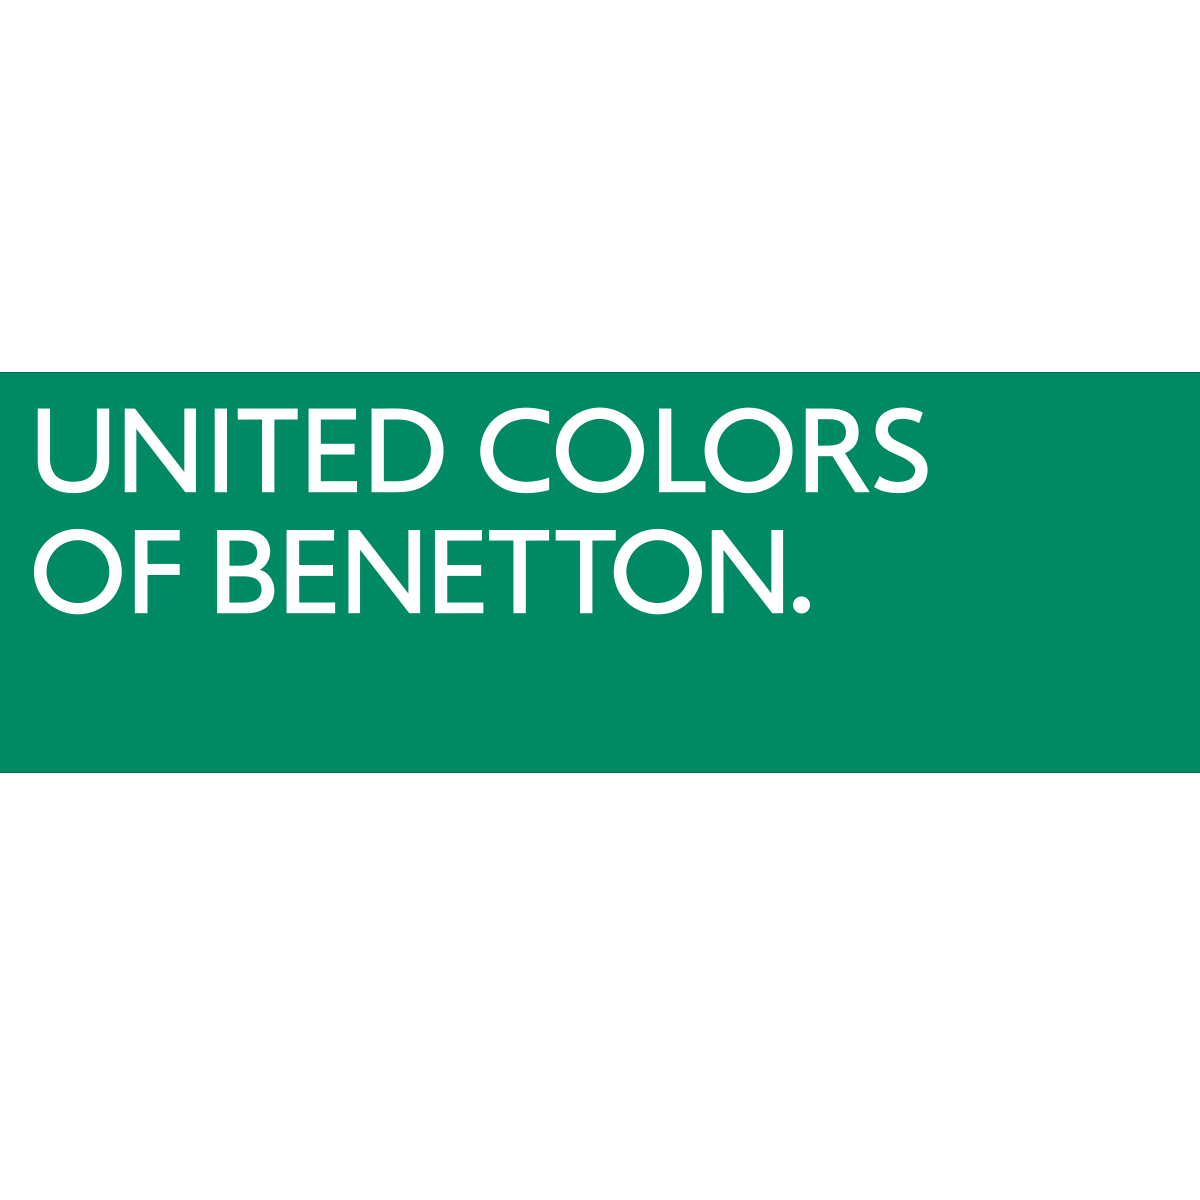 UNITED COLORS OF BENETTON 班尼頓